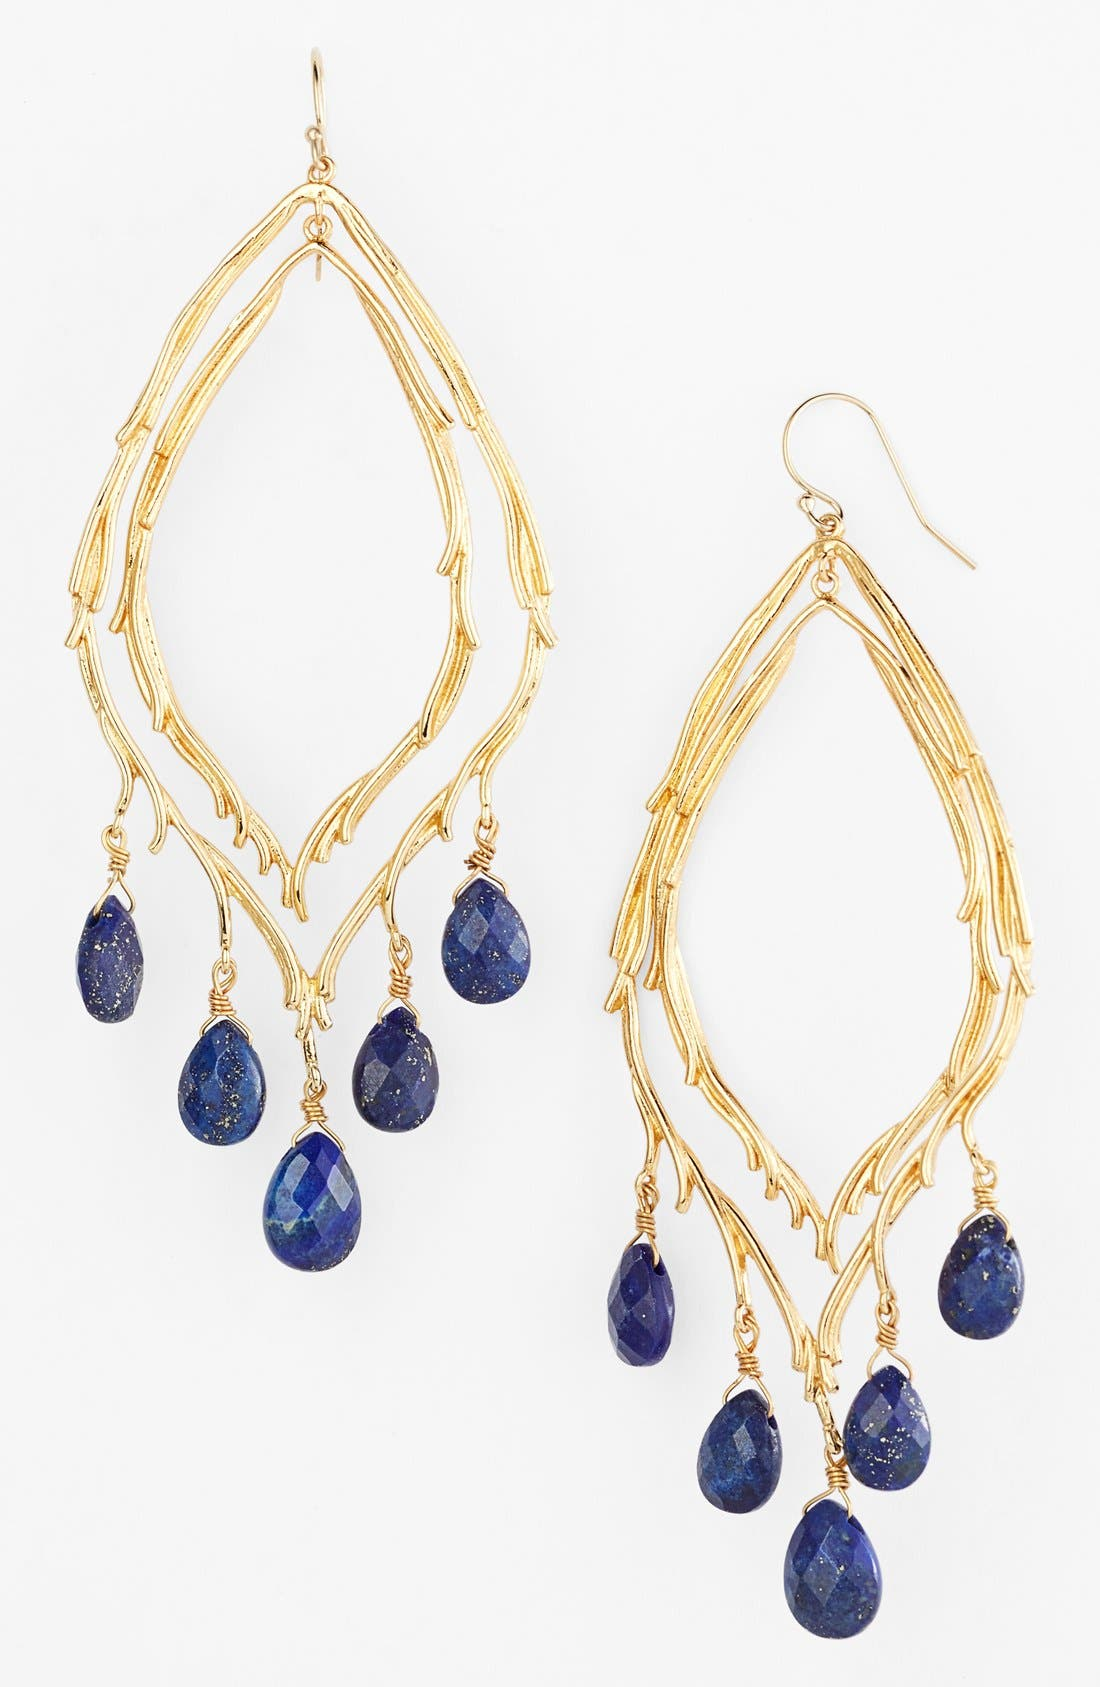 Main Image - Alexis Bittar 'Elements - Maldivian' Feathered Stone Teardrop Orbiting Earrings